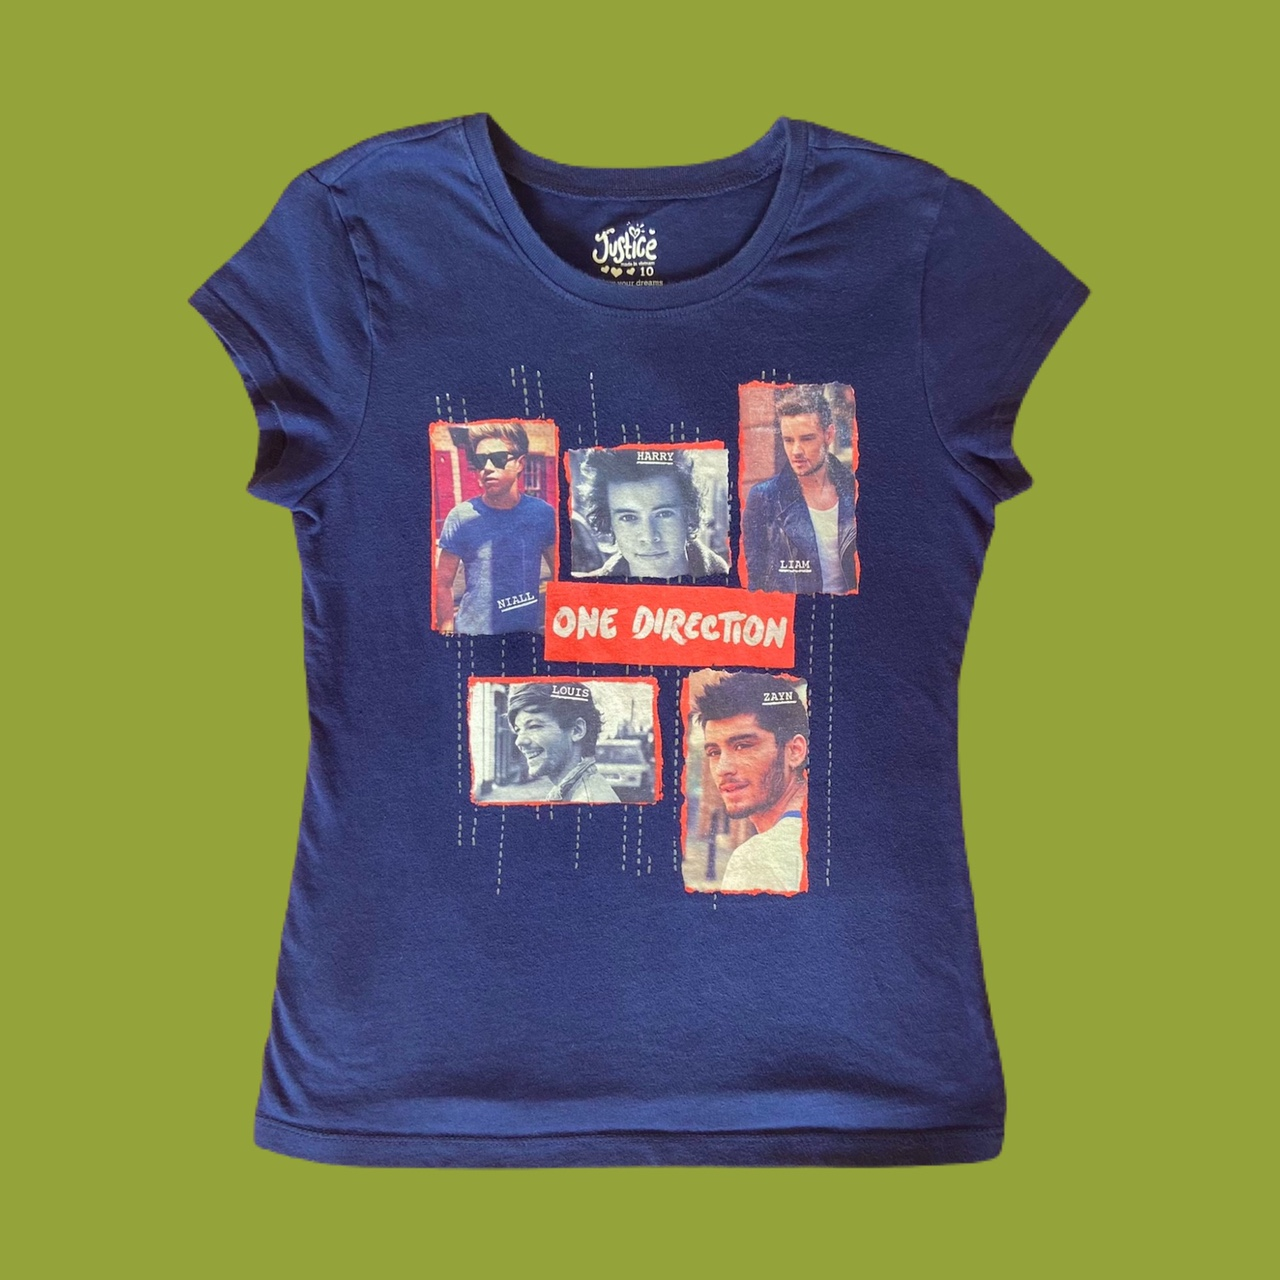 Product Image 1 - Navy One Direction T-Shirt Band